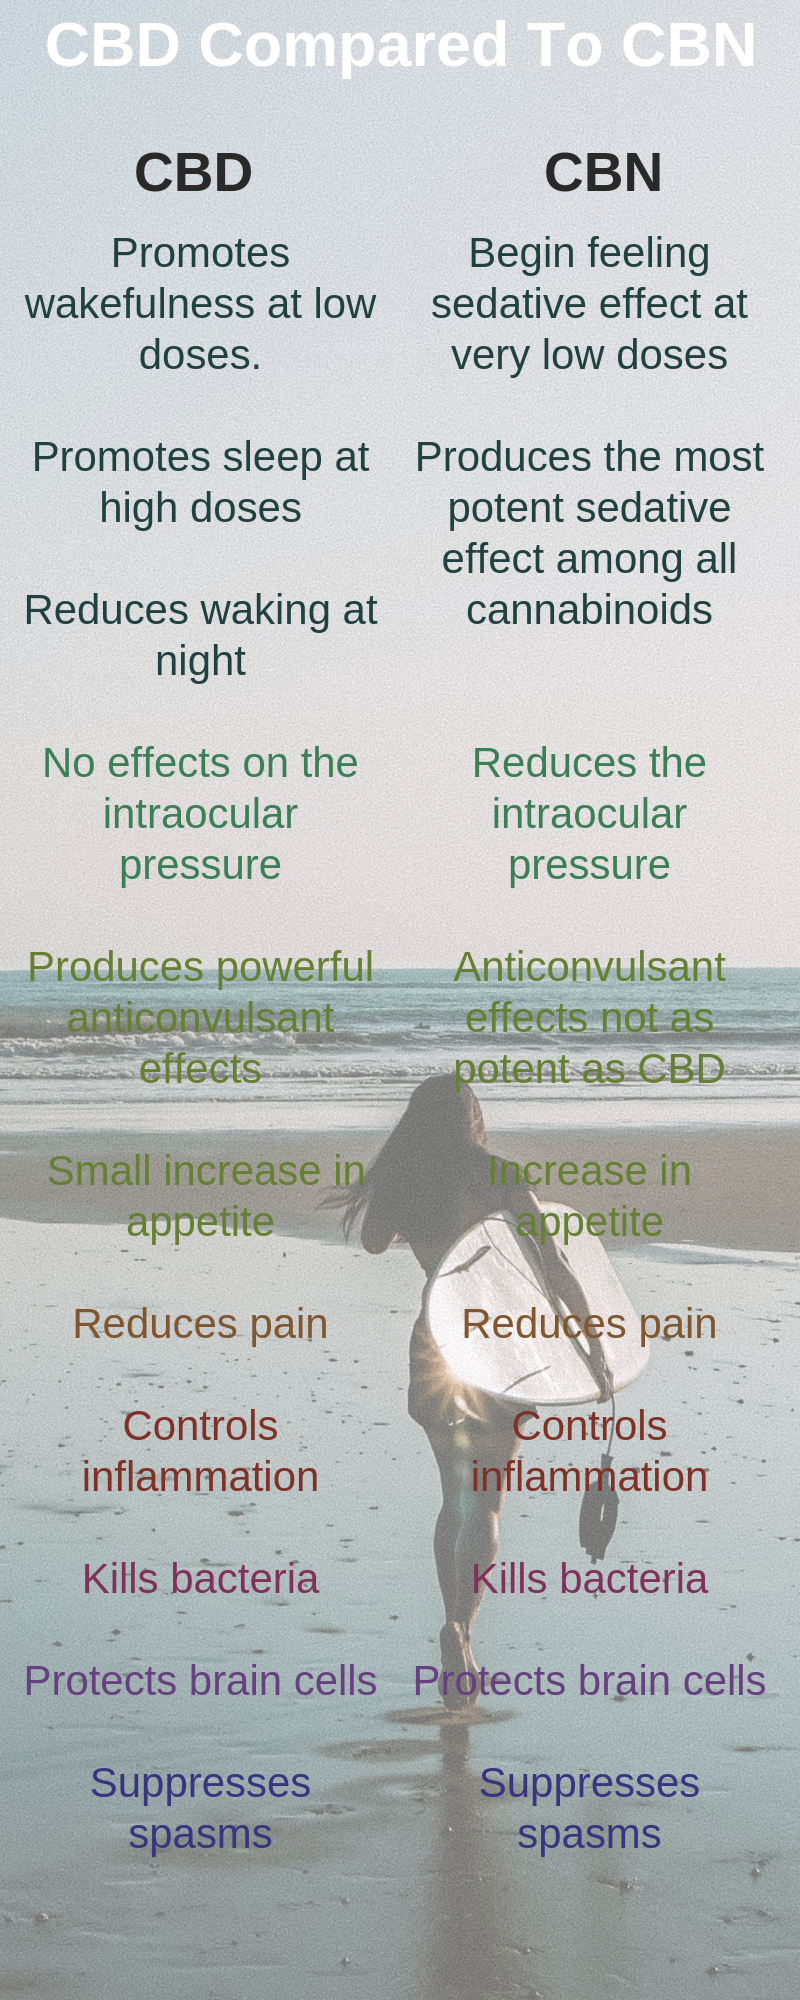 CBN Oil and CBD Oil – What are The Differences? - CBN Oil